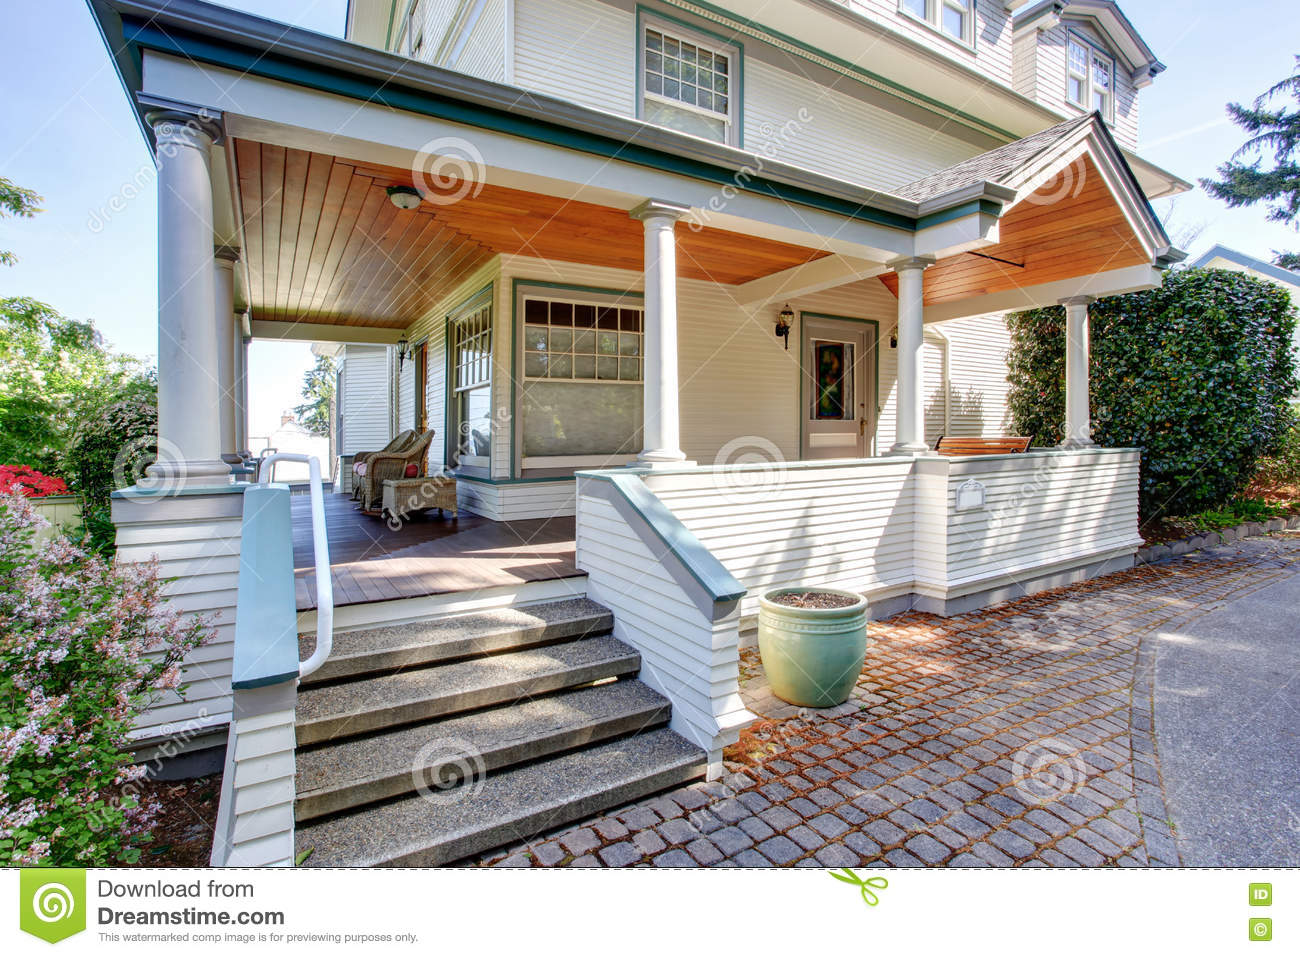 Covered front porch craftsman style home royalty free stock image - Front Porch With Chairs And Columns Of Craftsman Home Royalty Free Stock Images